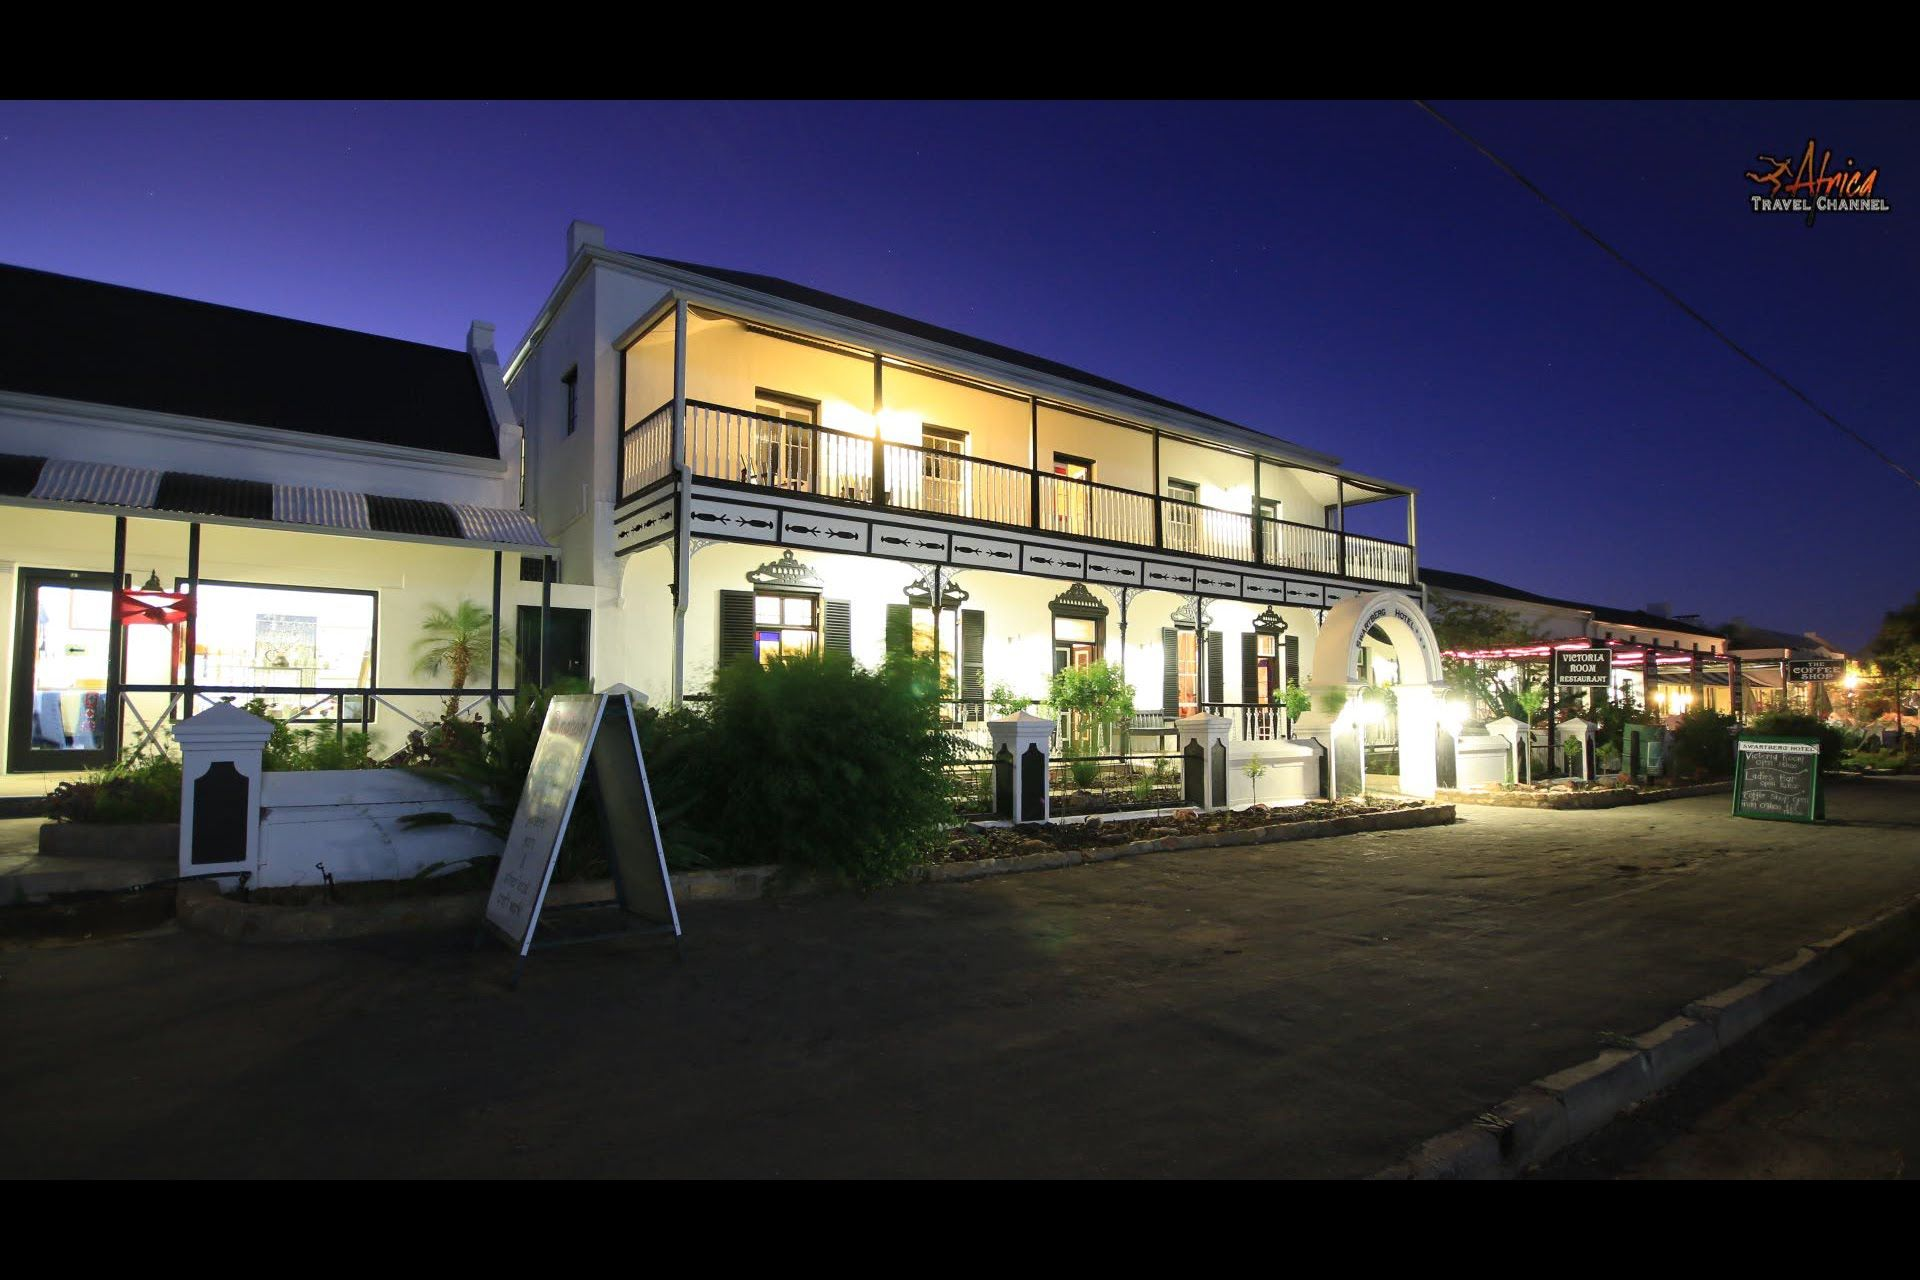 Swartberg Hotel Accommodation Prince Albert Africa Travel Channel